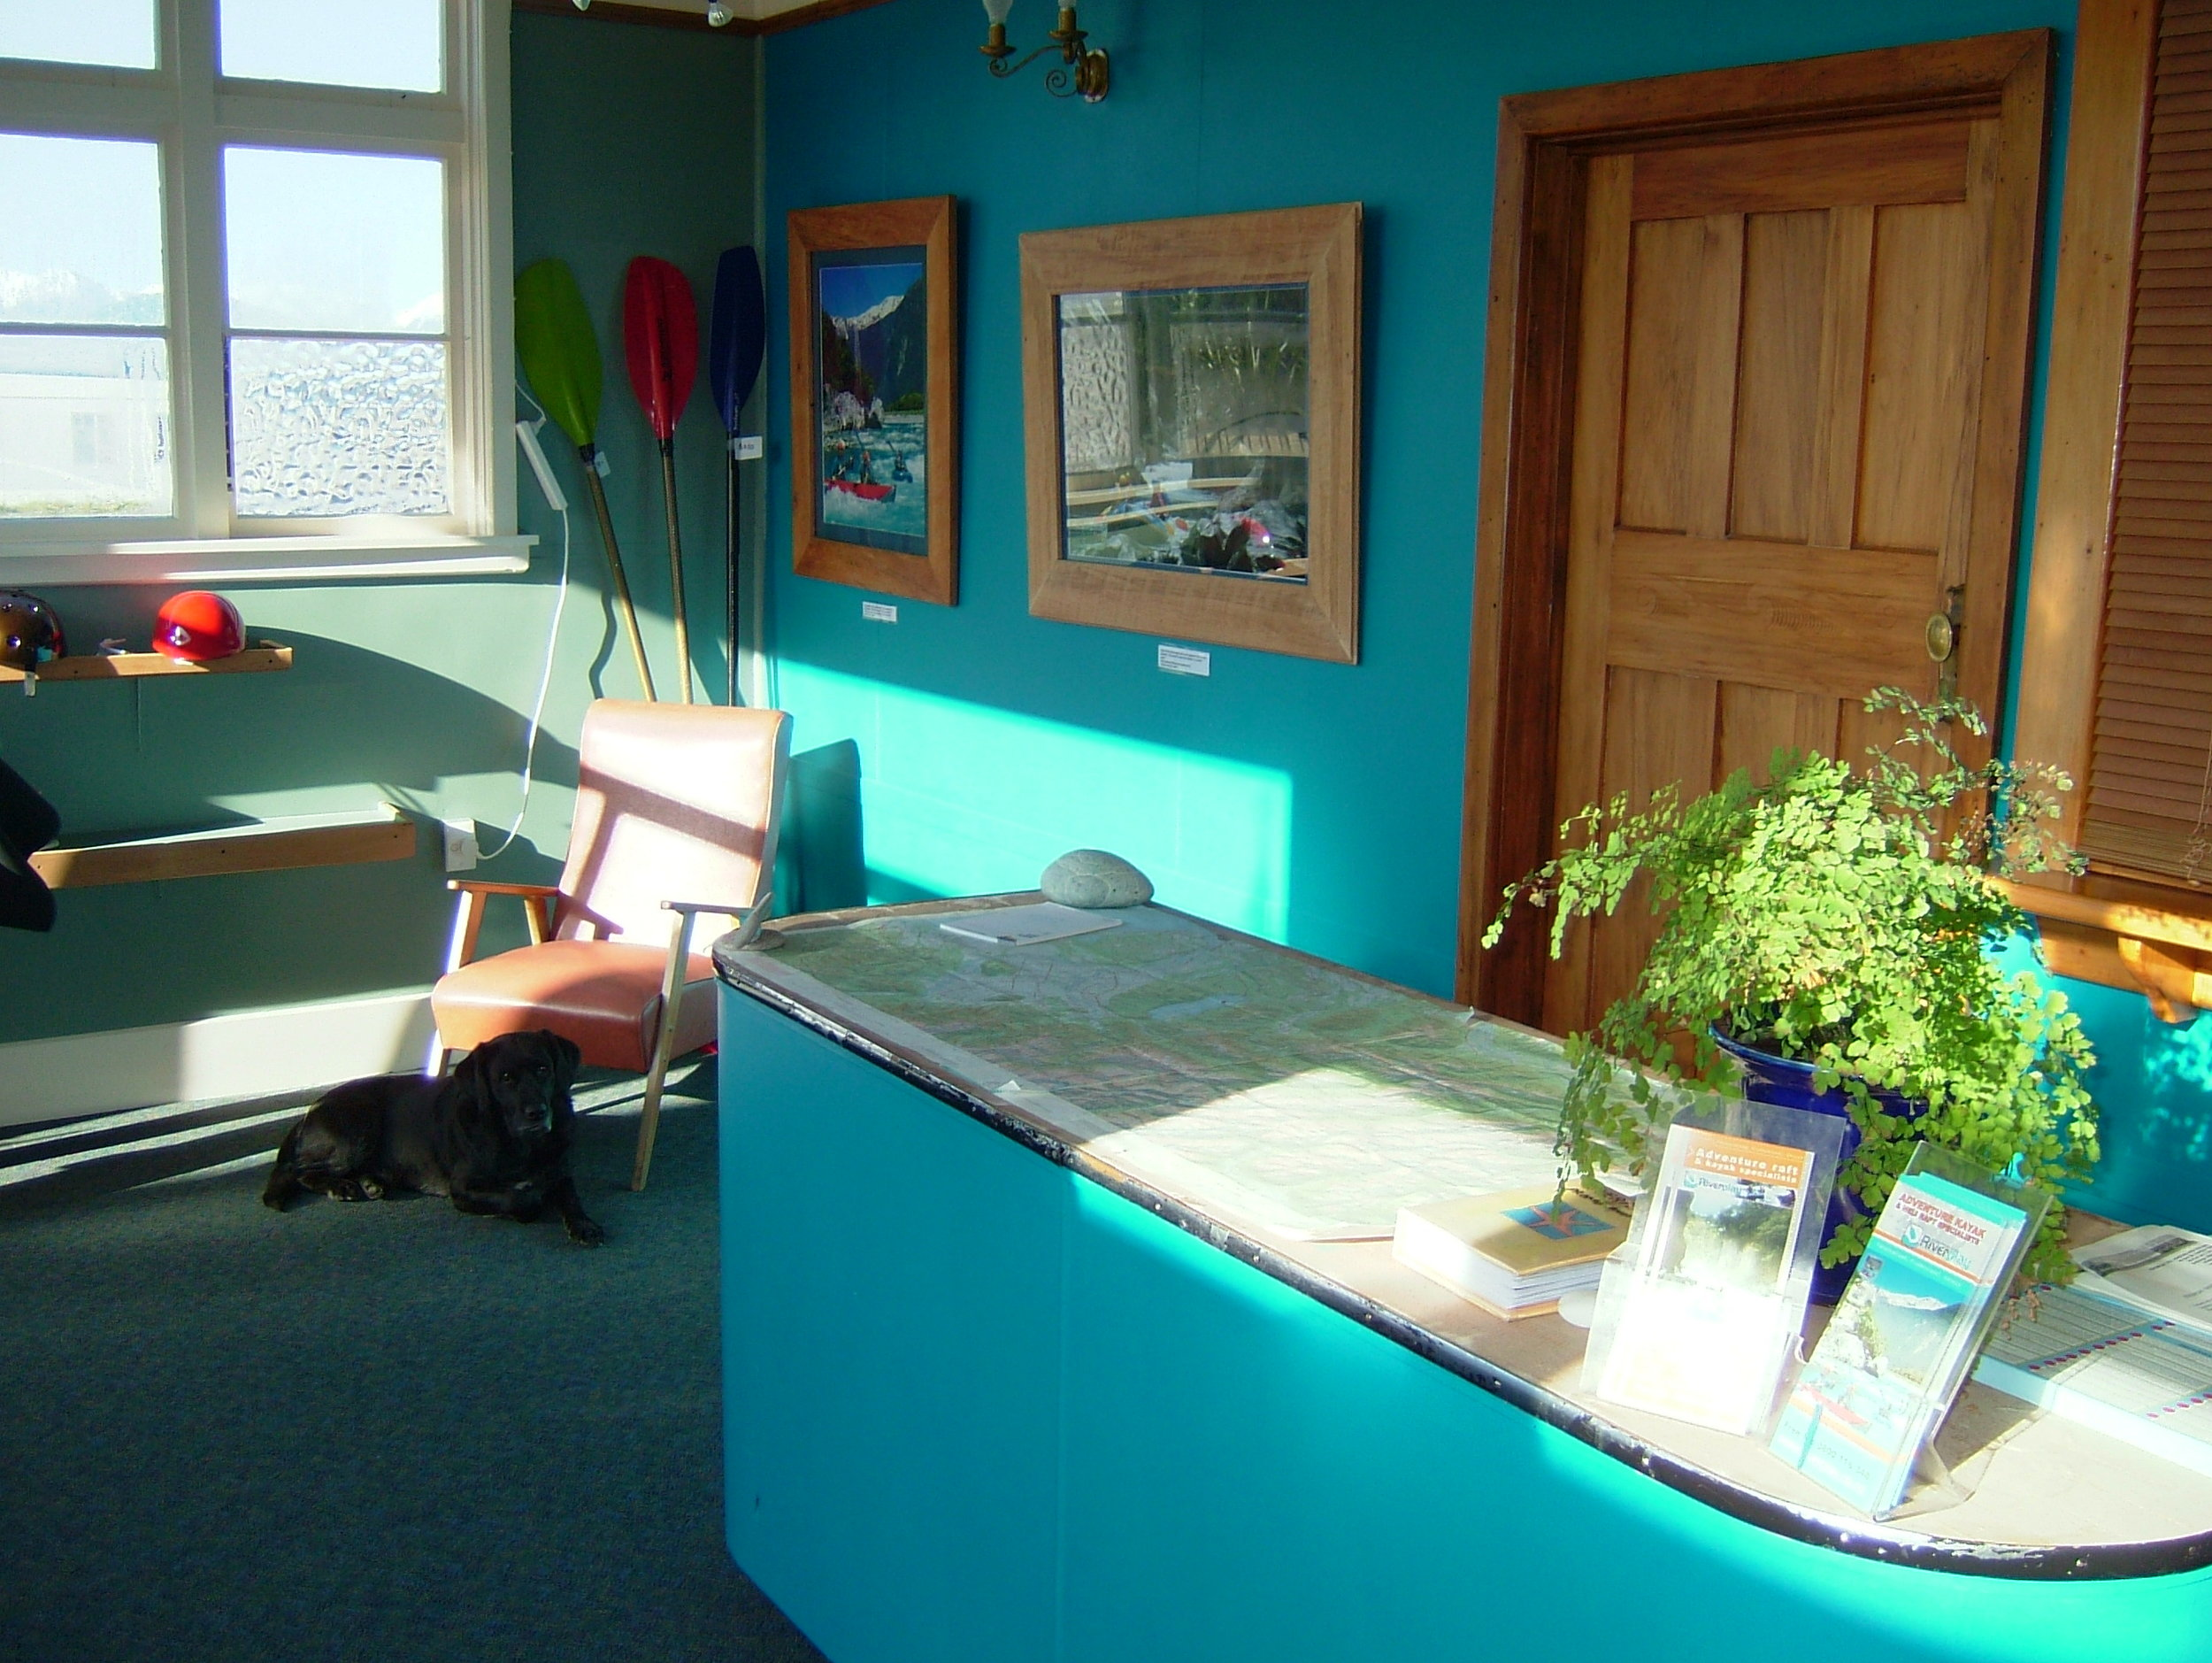 Riverplay headquarters, the southern alps peeking through the windows and Jett the rafting dog waiting for the punters.